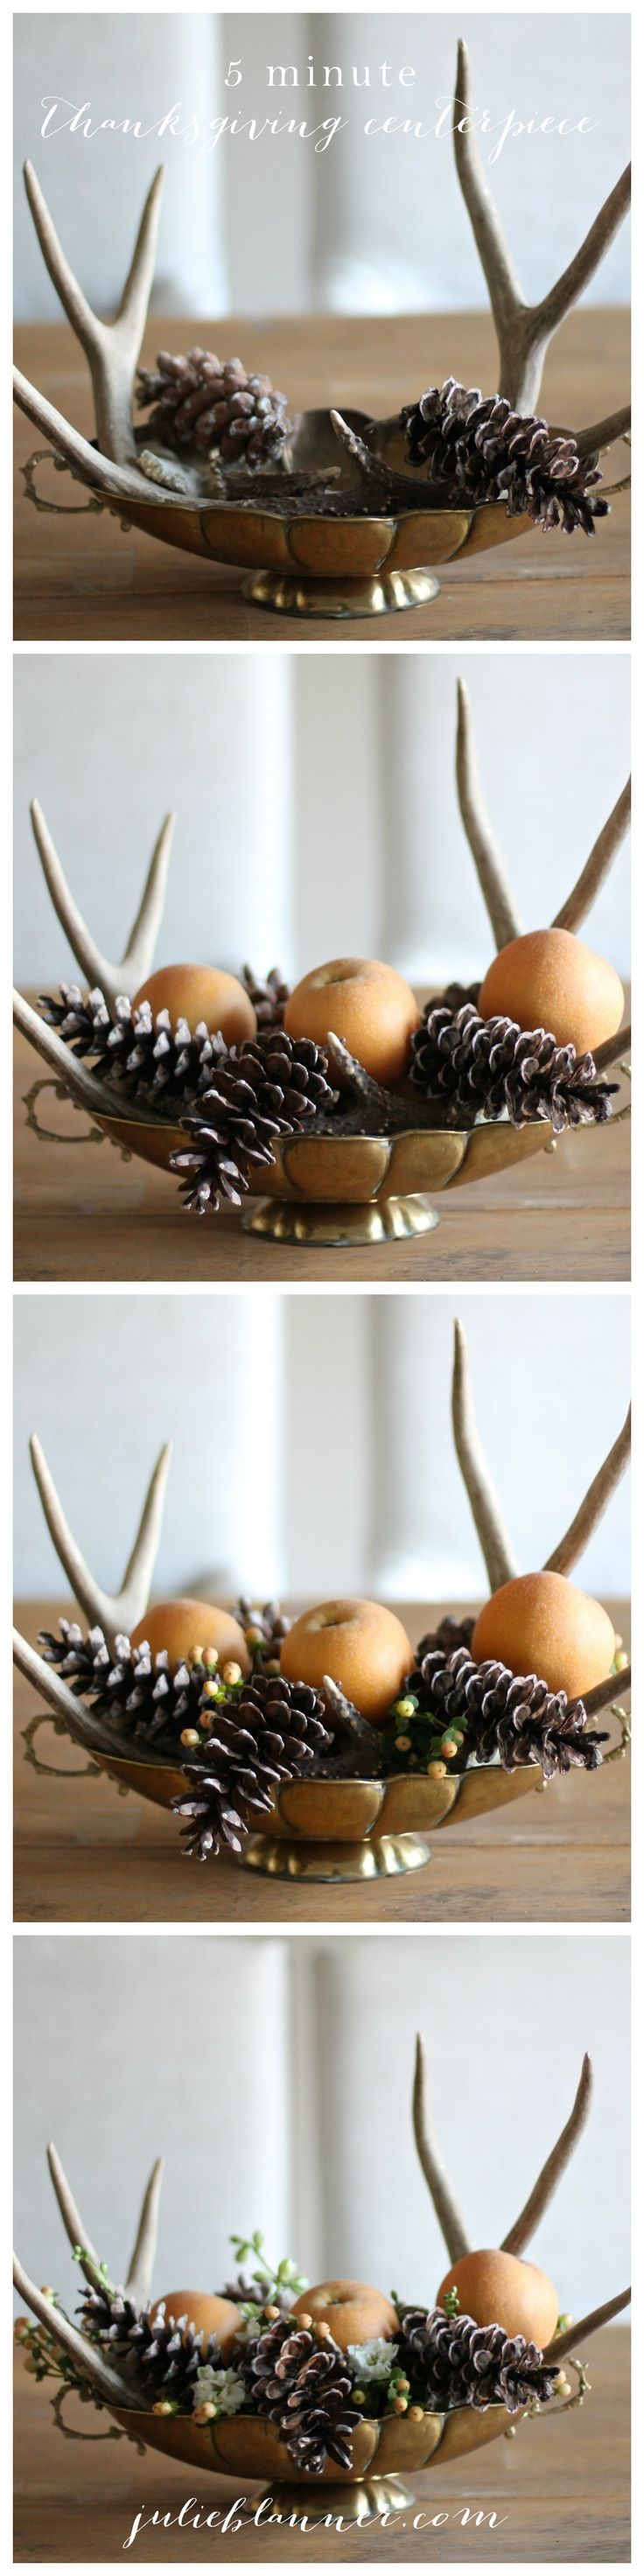 Easy Thanksgiving decorations, a 5 Minute Thanksgiving Centerpiece Tutorial - no experience needed!